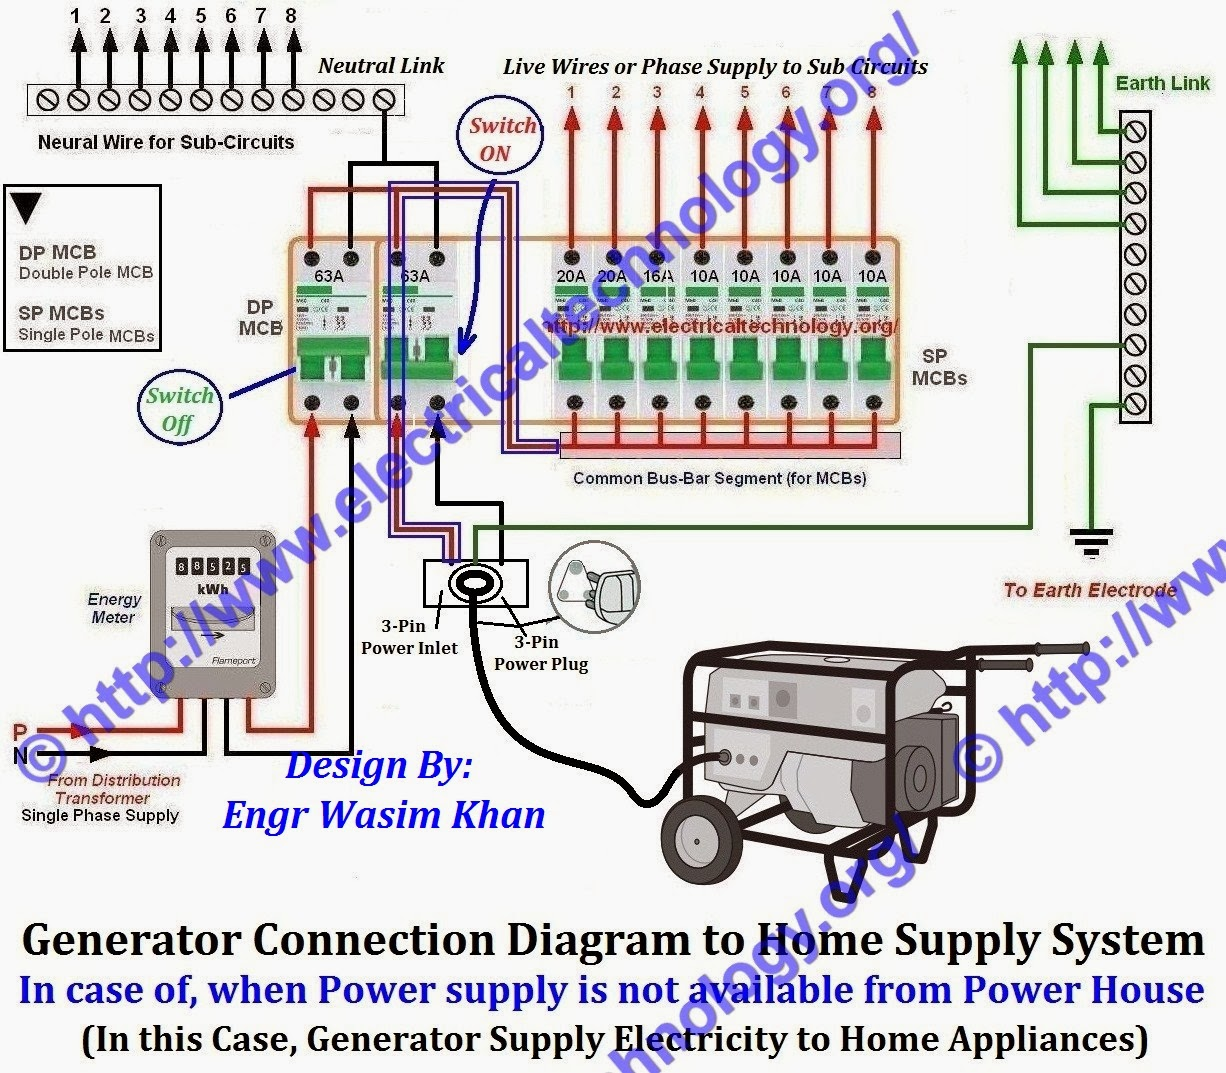 Home Generator Wiring Diagram Transfer Switch Wiring Diagram Handyman Diagrams In 2019 How To Build Off The Grid Generator Battery Home Backup Installing Whole House Generator Electrical Diy Snapper G55000 5500 Watt